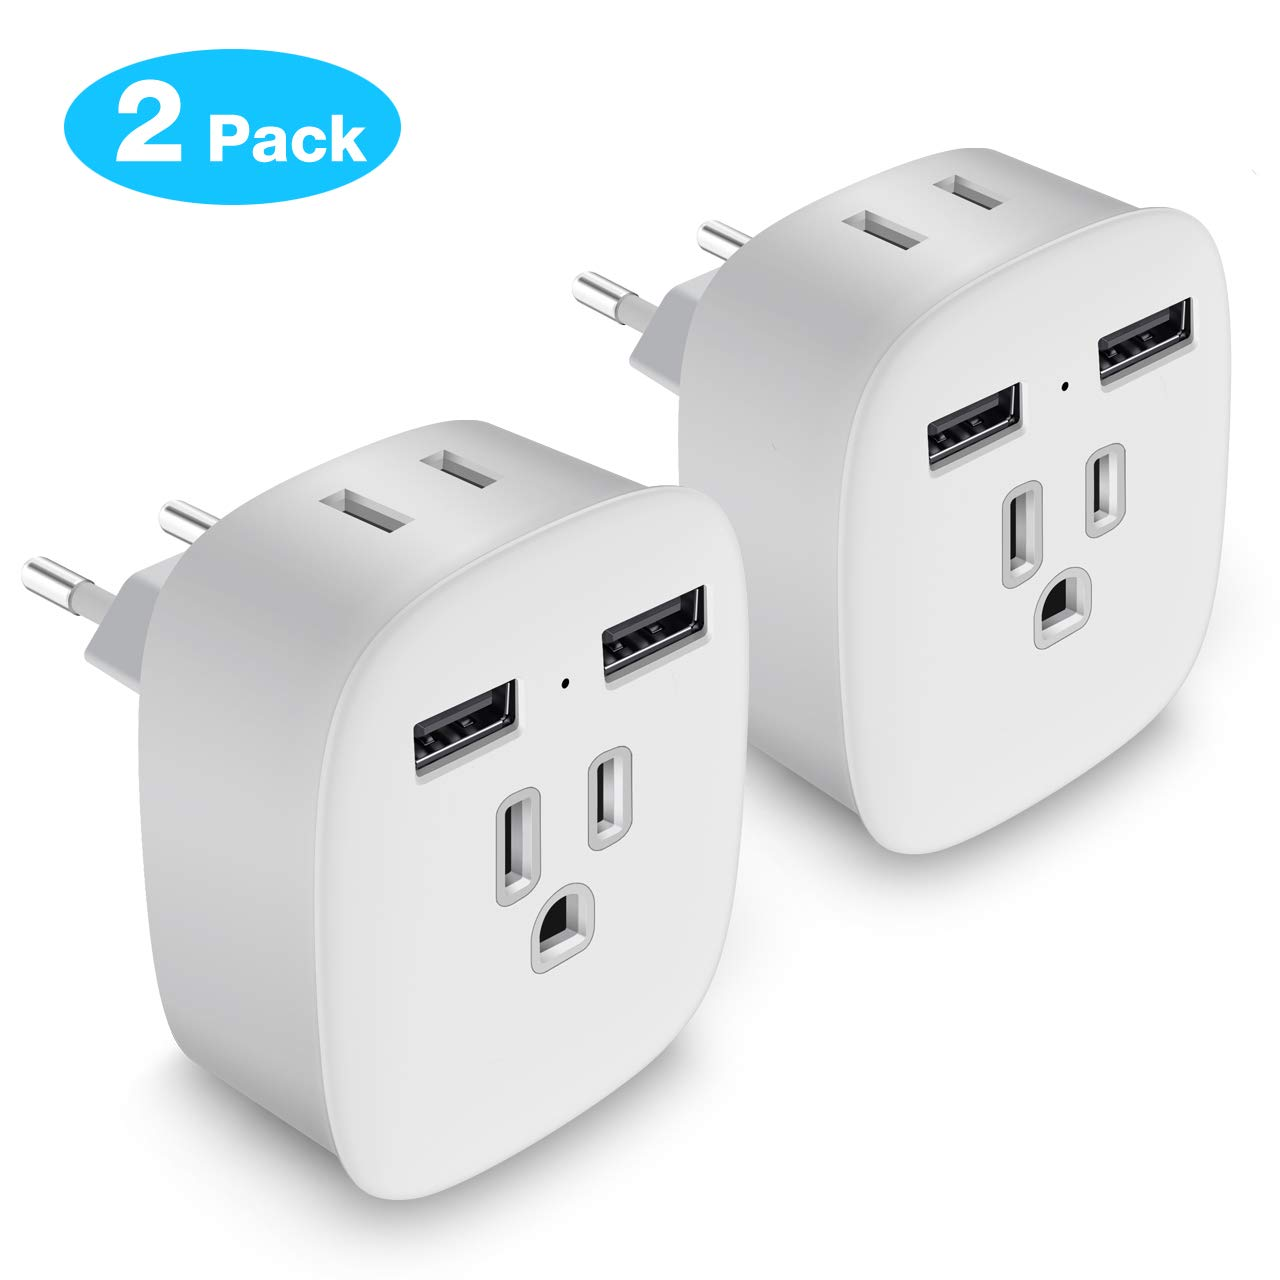 European Plug Adapter, Upgraded 4 in 1 US to Europe Travel Plug Adapter with 2 USB Ports 2 Outlets, European Type C Plug Travel Adapter for Italy France Spain Germany Greece Iceland (2 Pack)